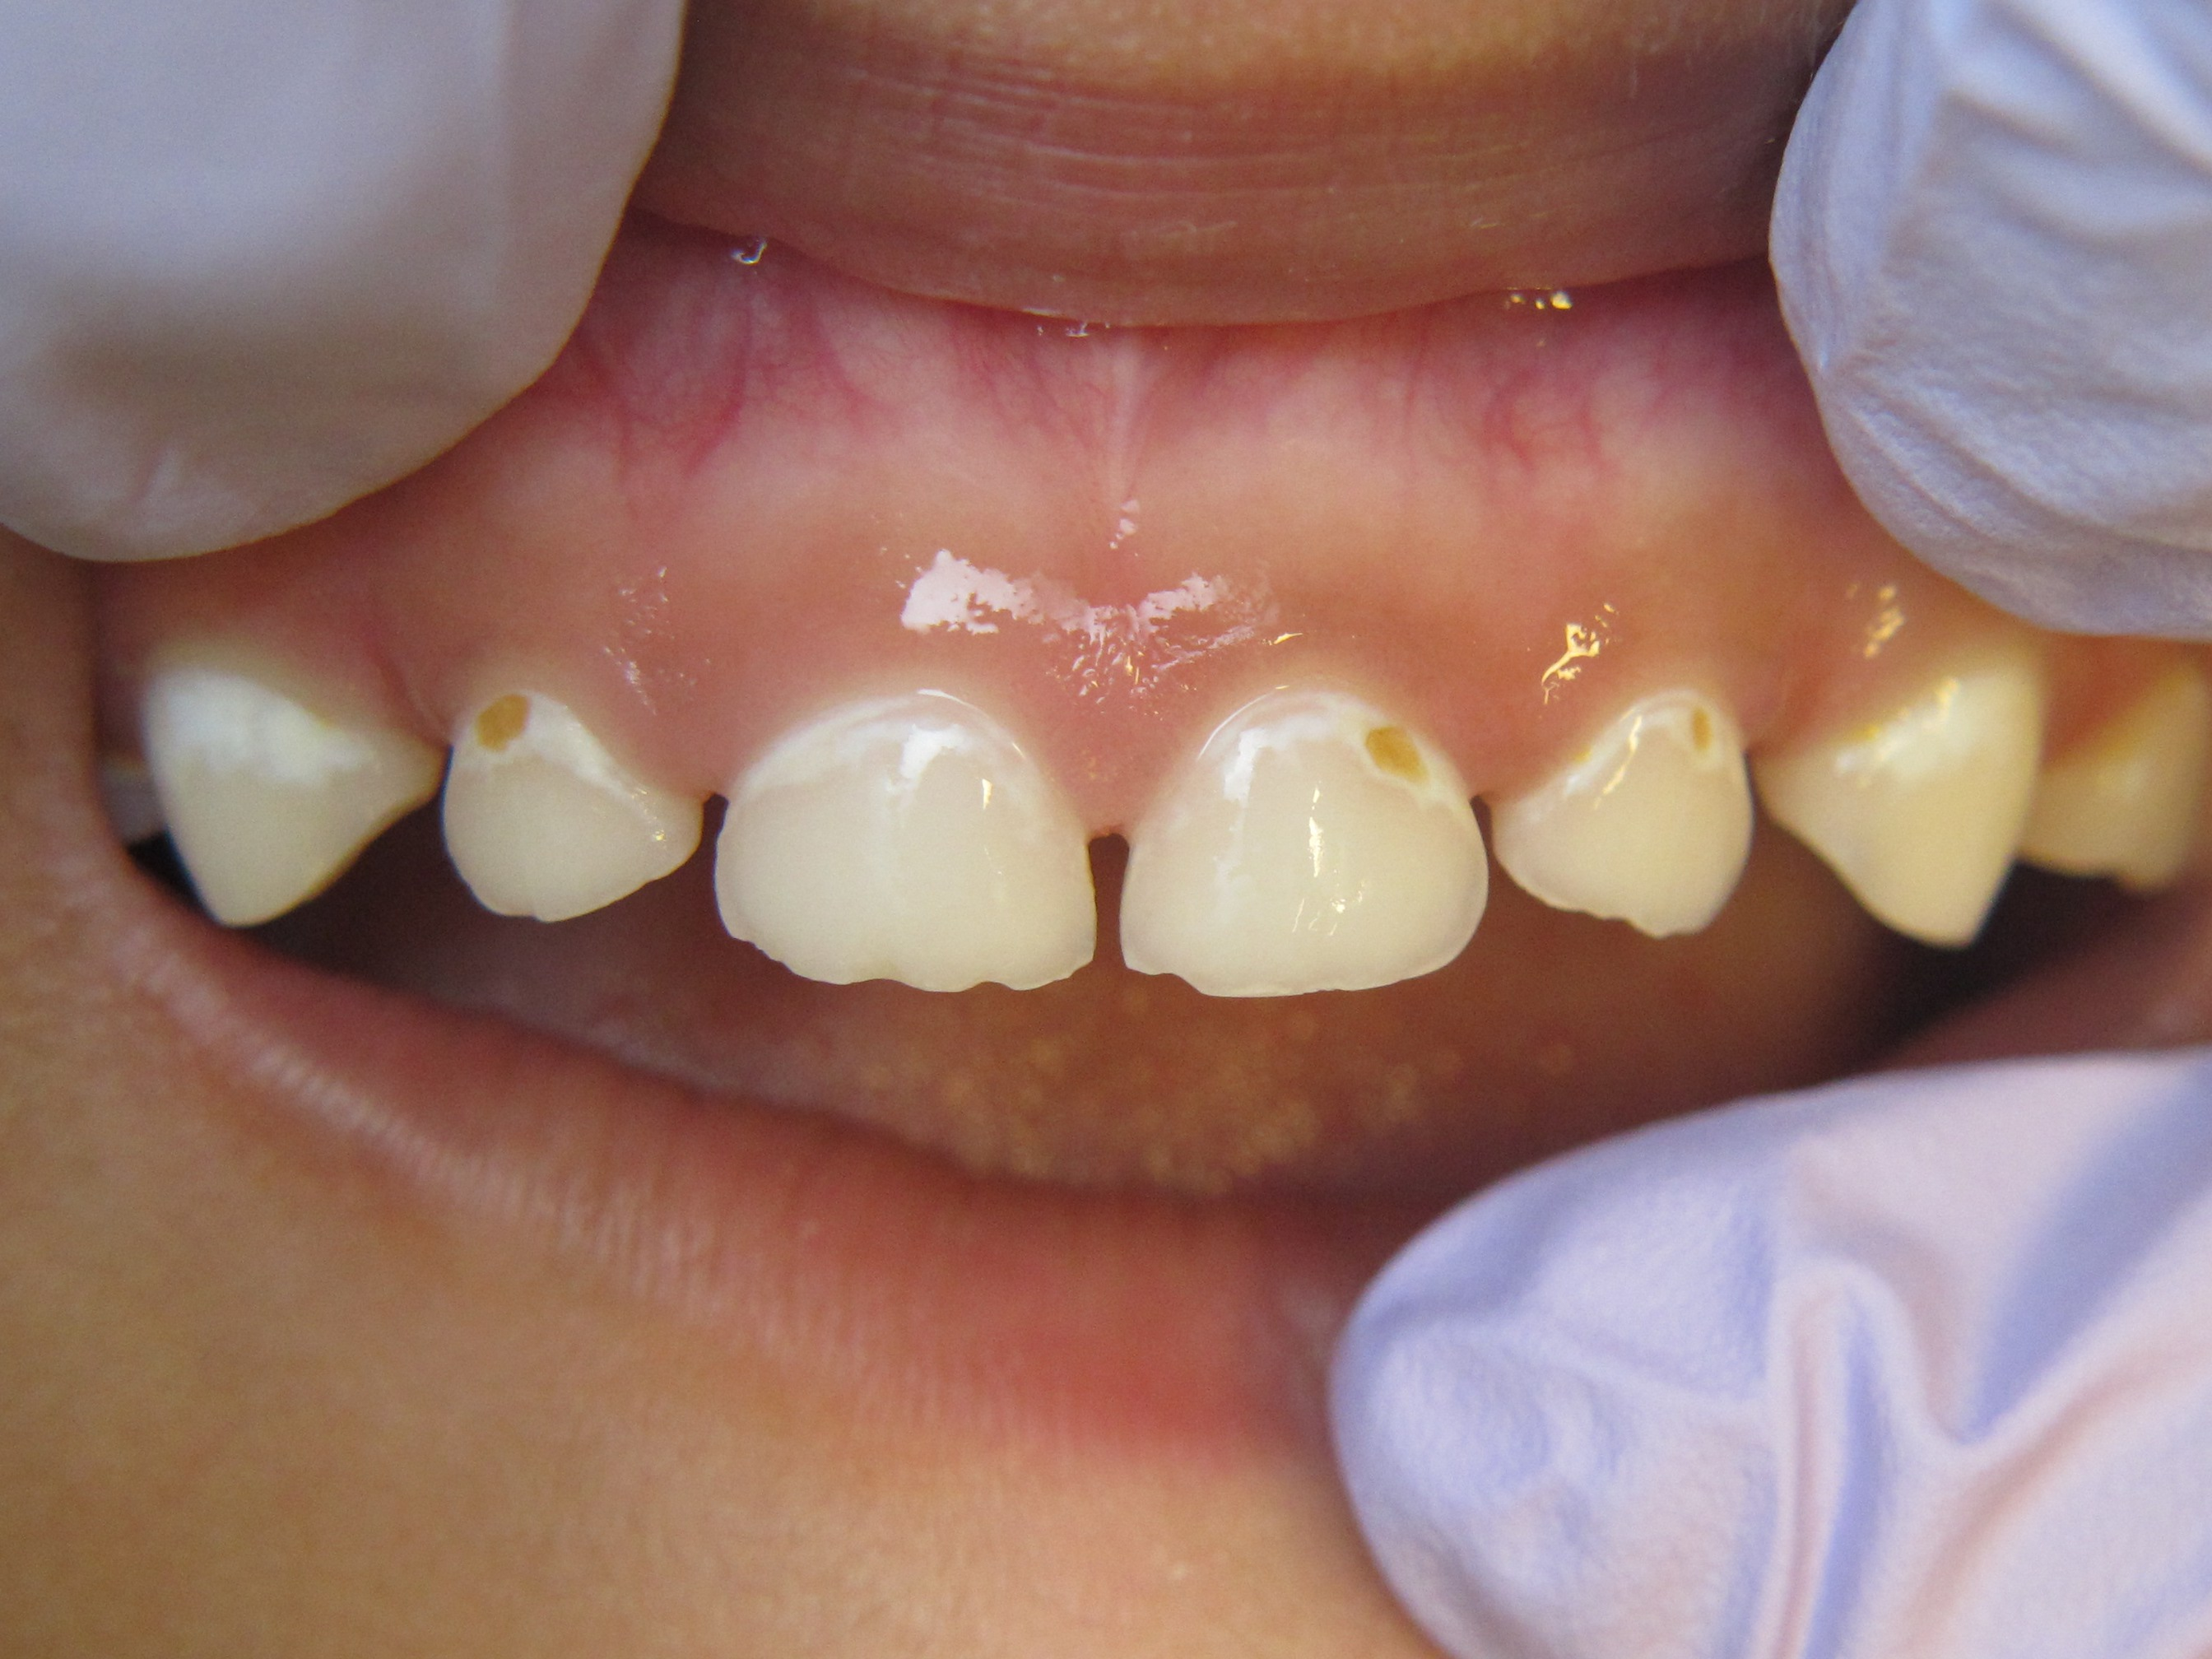 Figure 4. Moderate dental disease